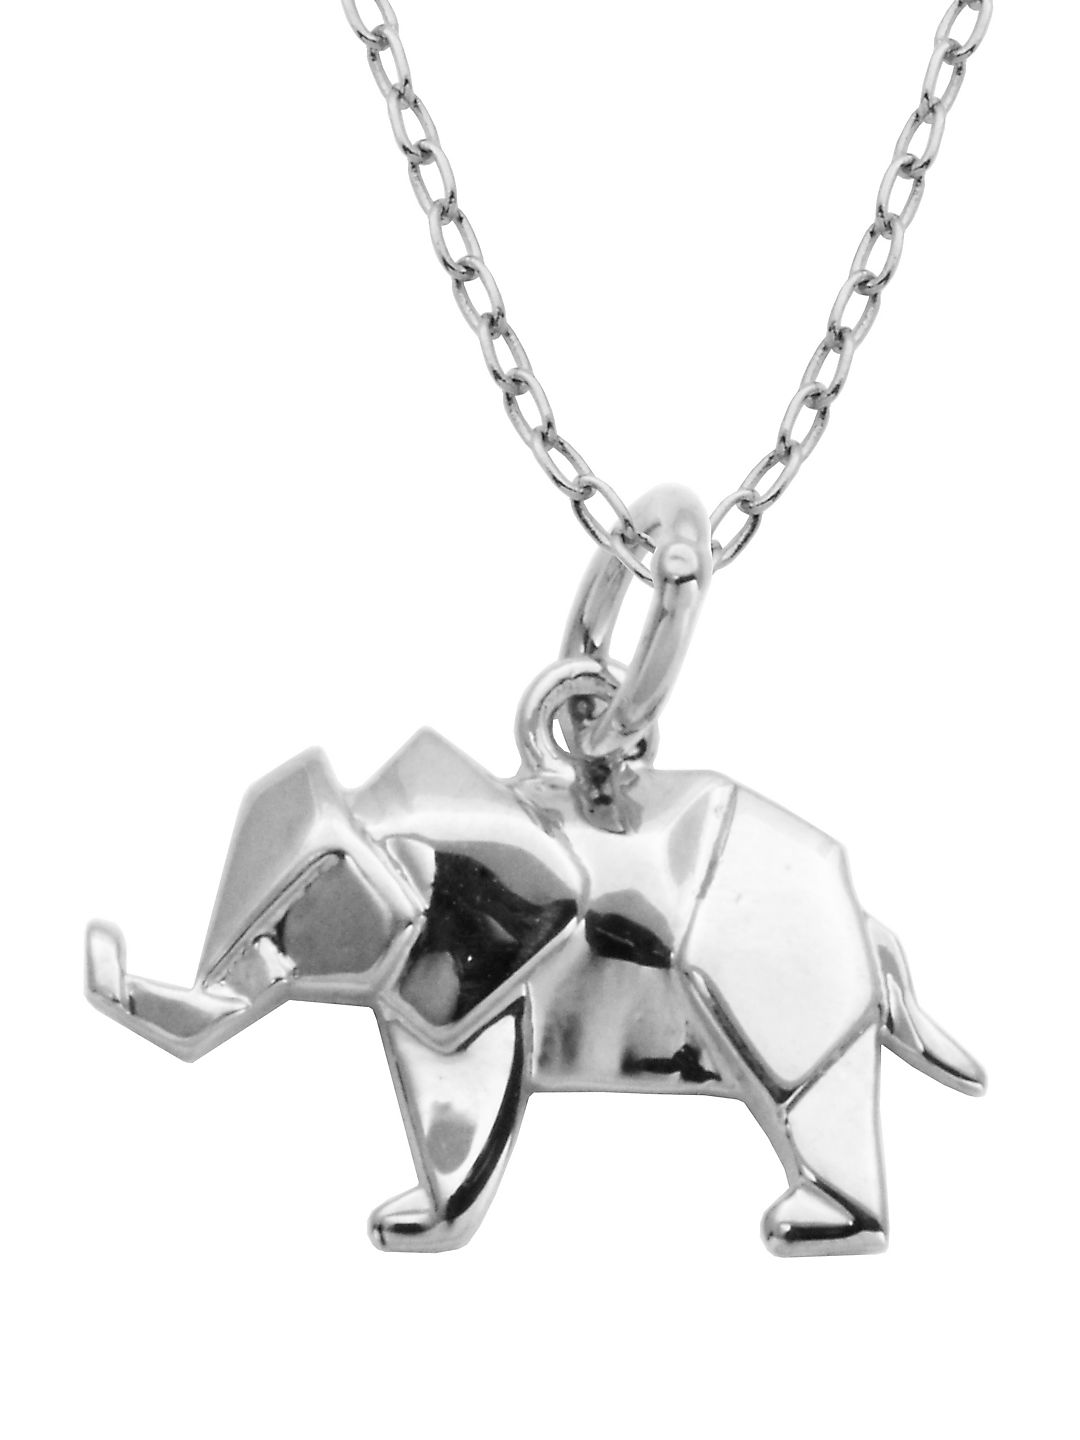 Rhodium-Plated Sterling Silver Origami Elephant Pendant Necklace